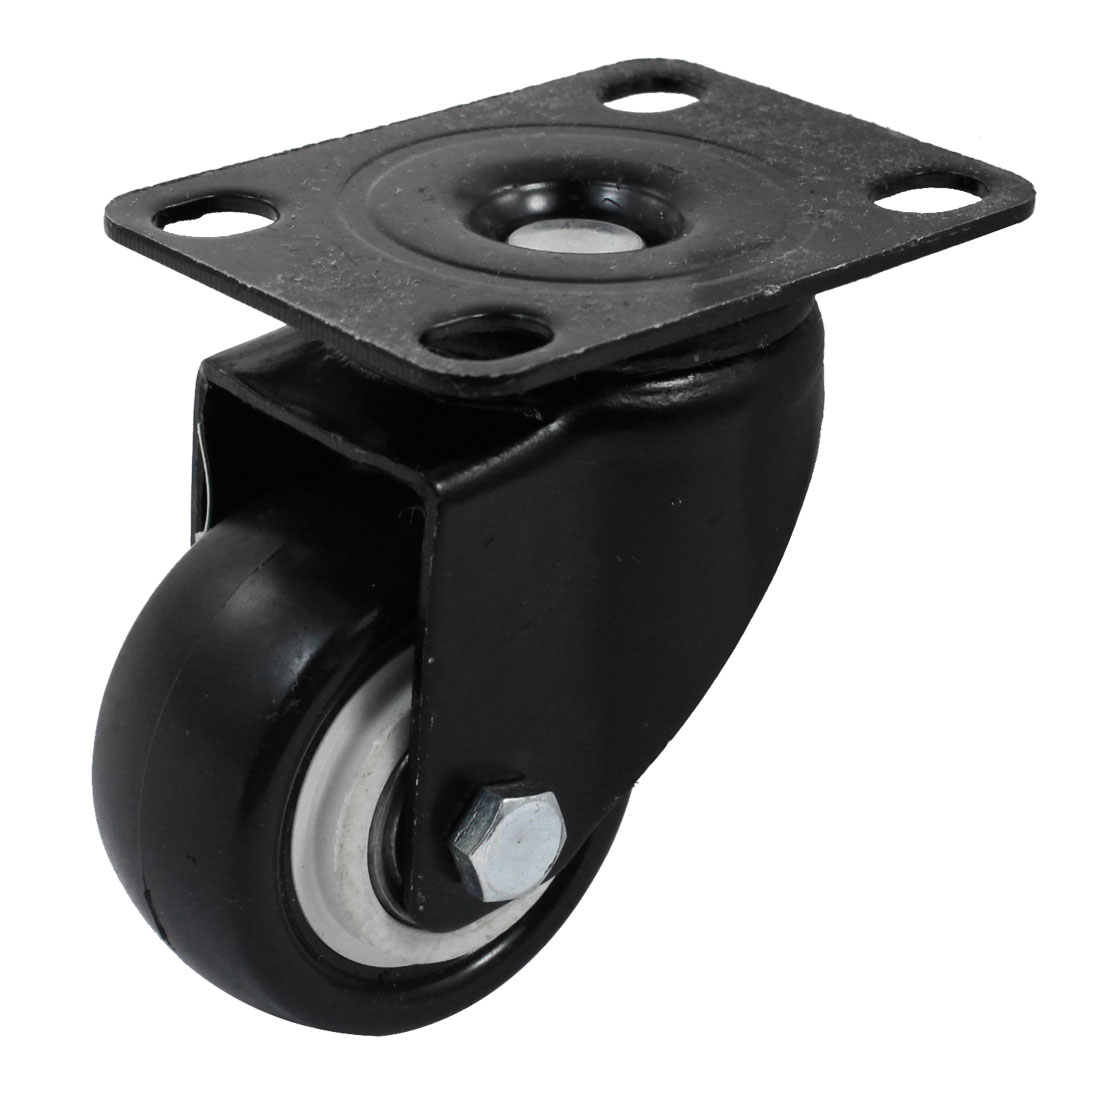 "Trolley 2"" Round Single Wheel Rectangular Top Plate 360 Degree Rotation Swivel Caster"